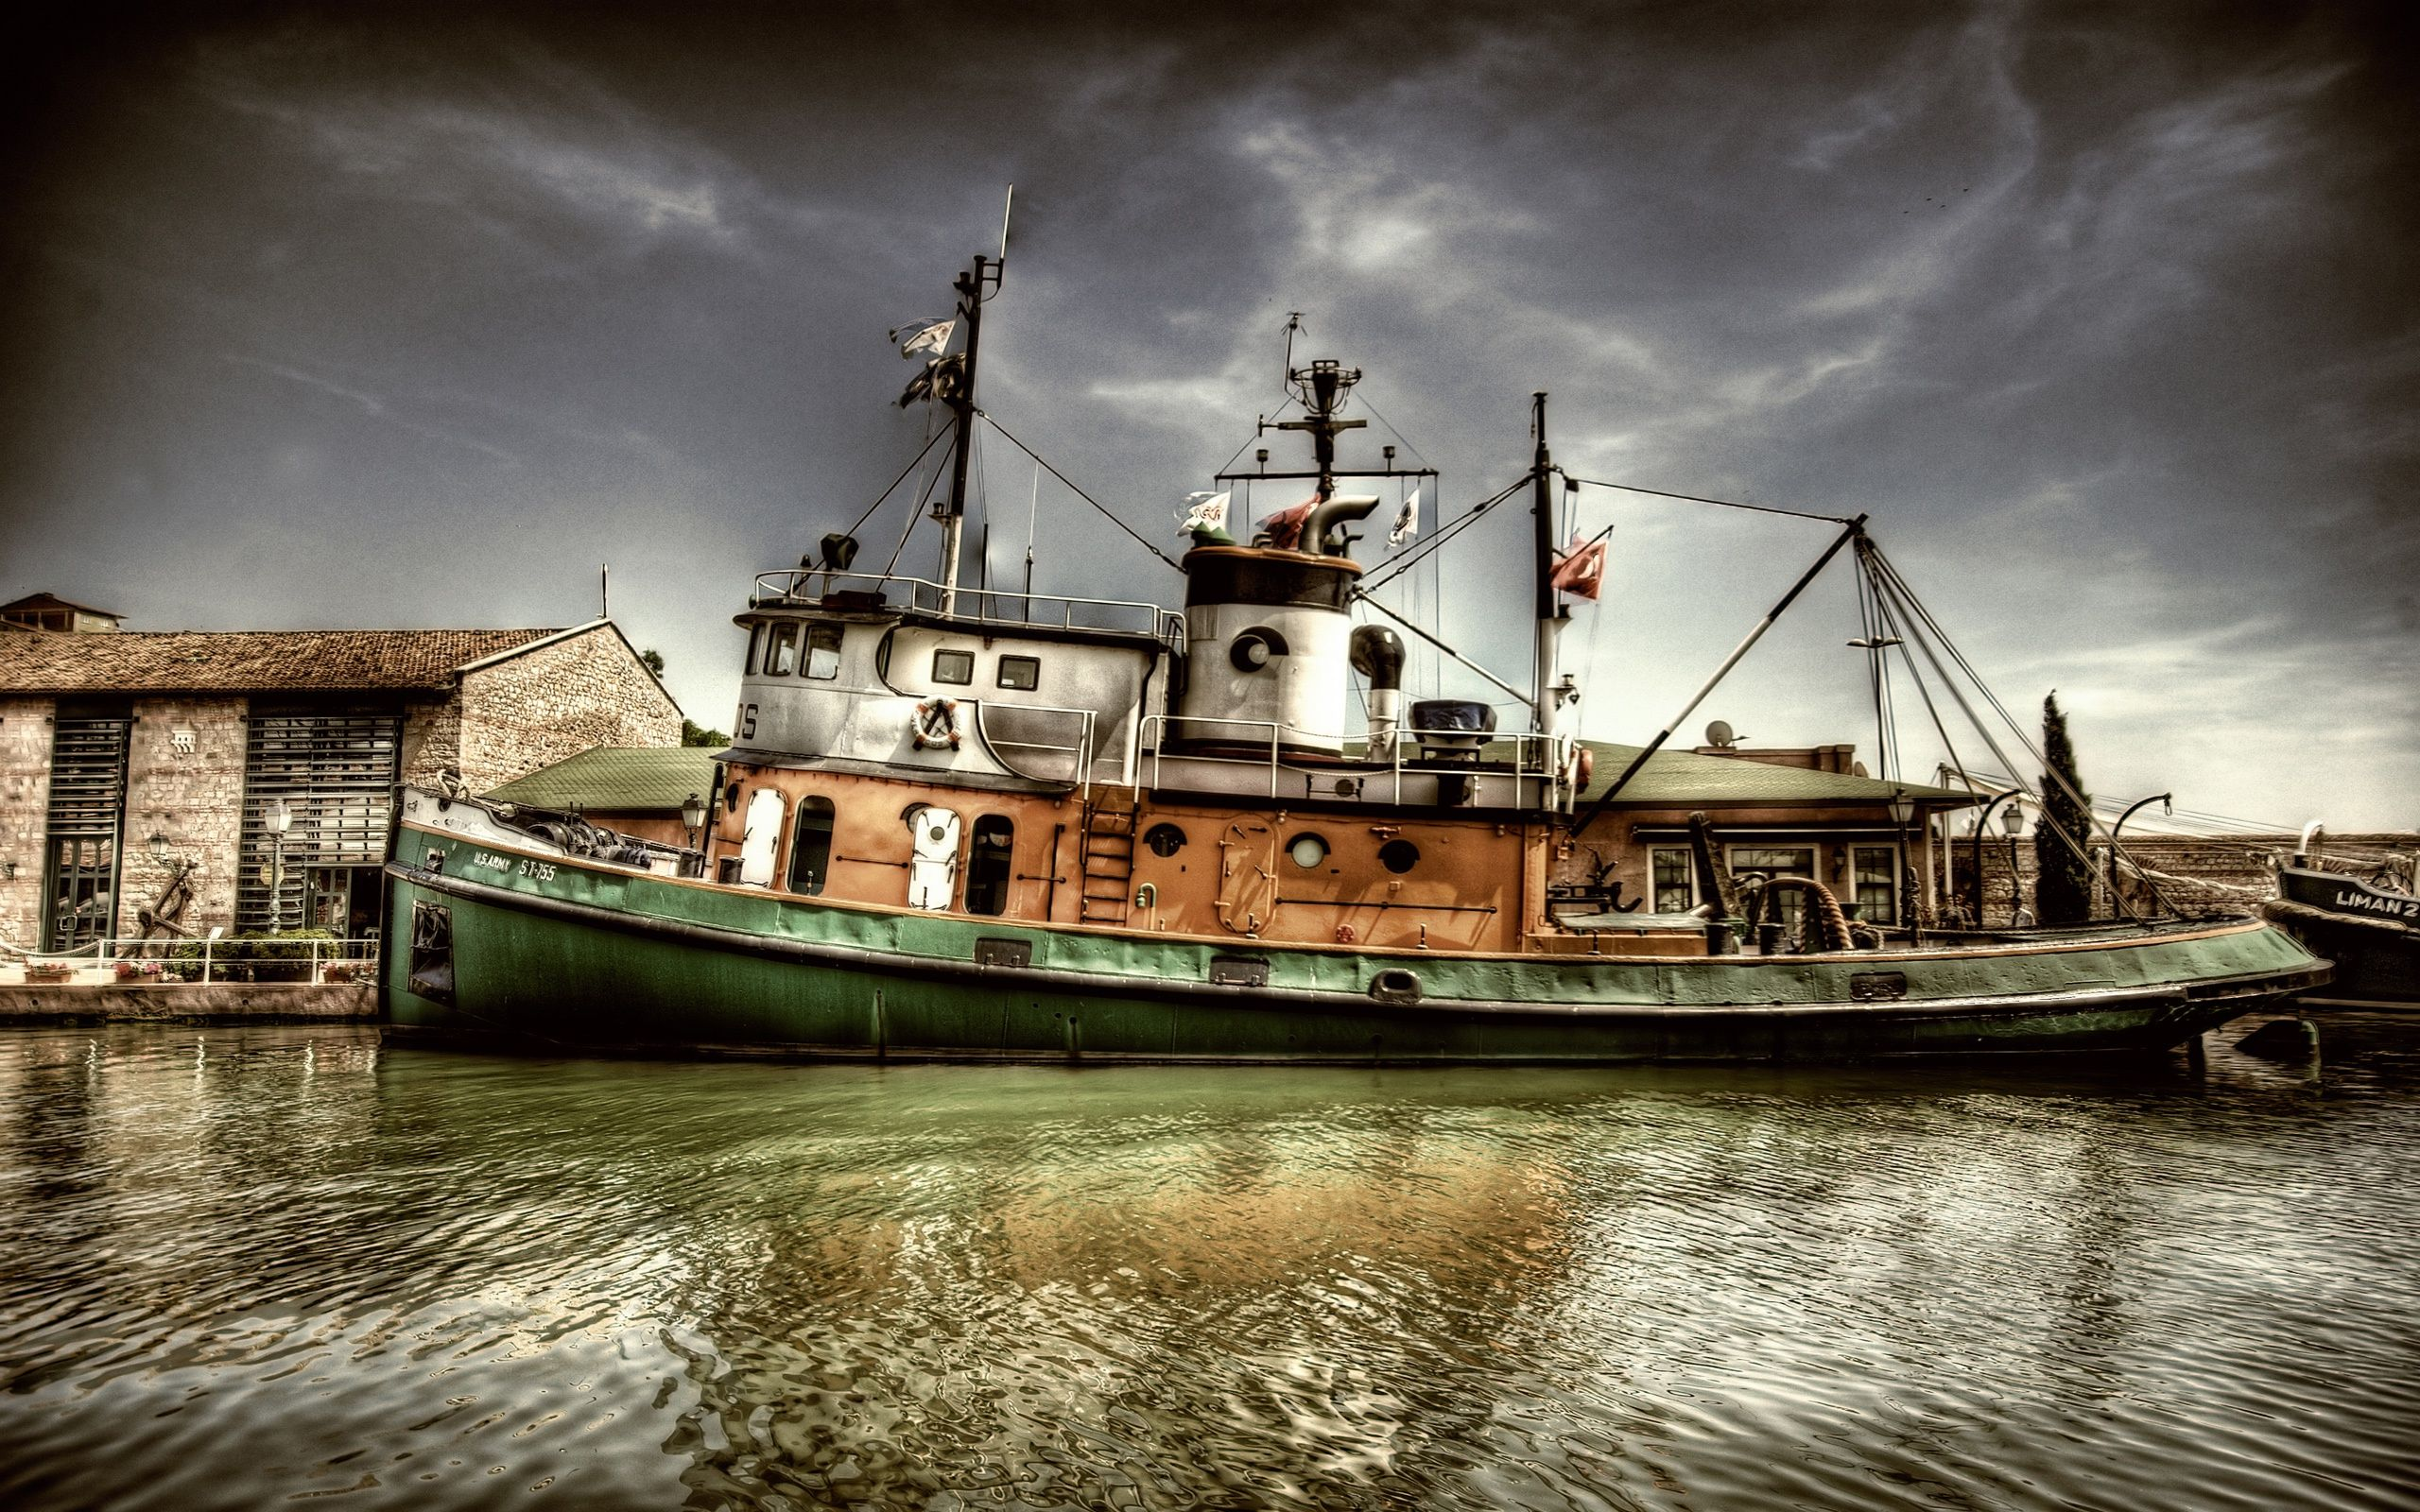 Boat Old At The Harbor And Photo High Resolution 792424 Wallpaper ...